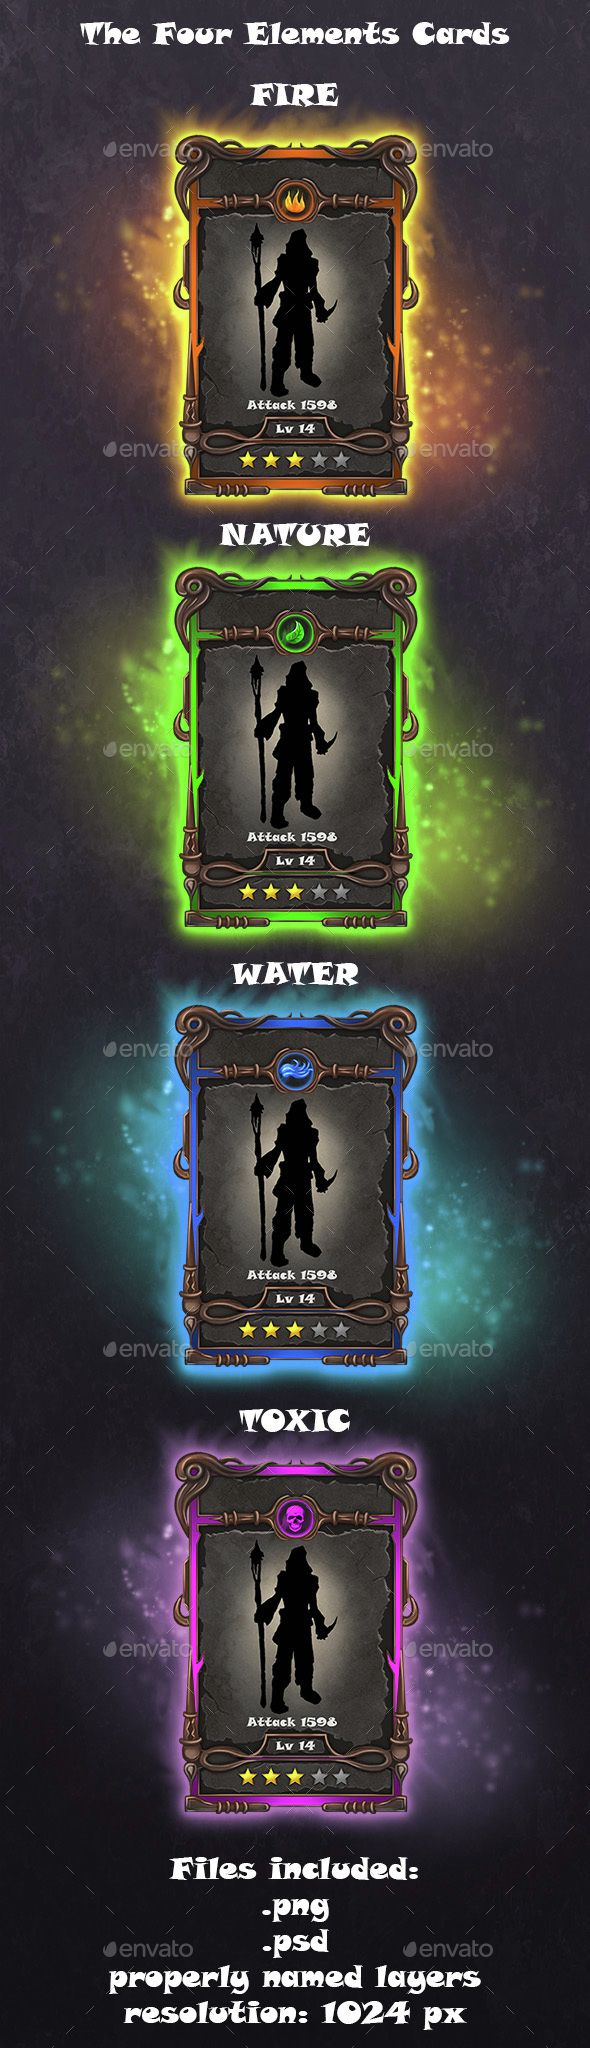 Crafting Cards Template